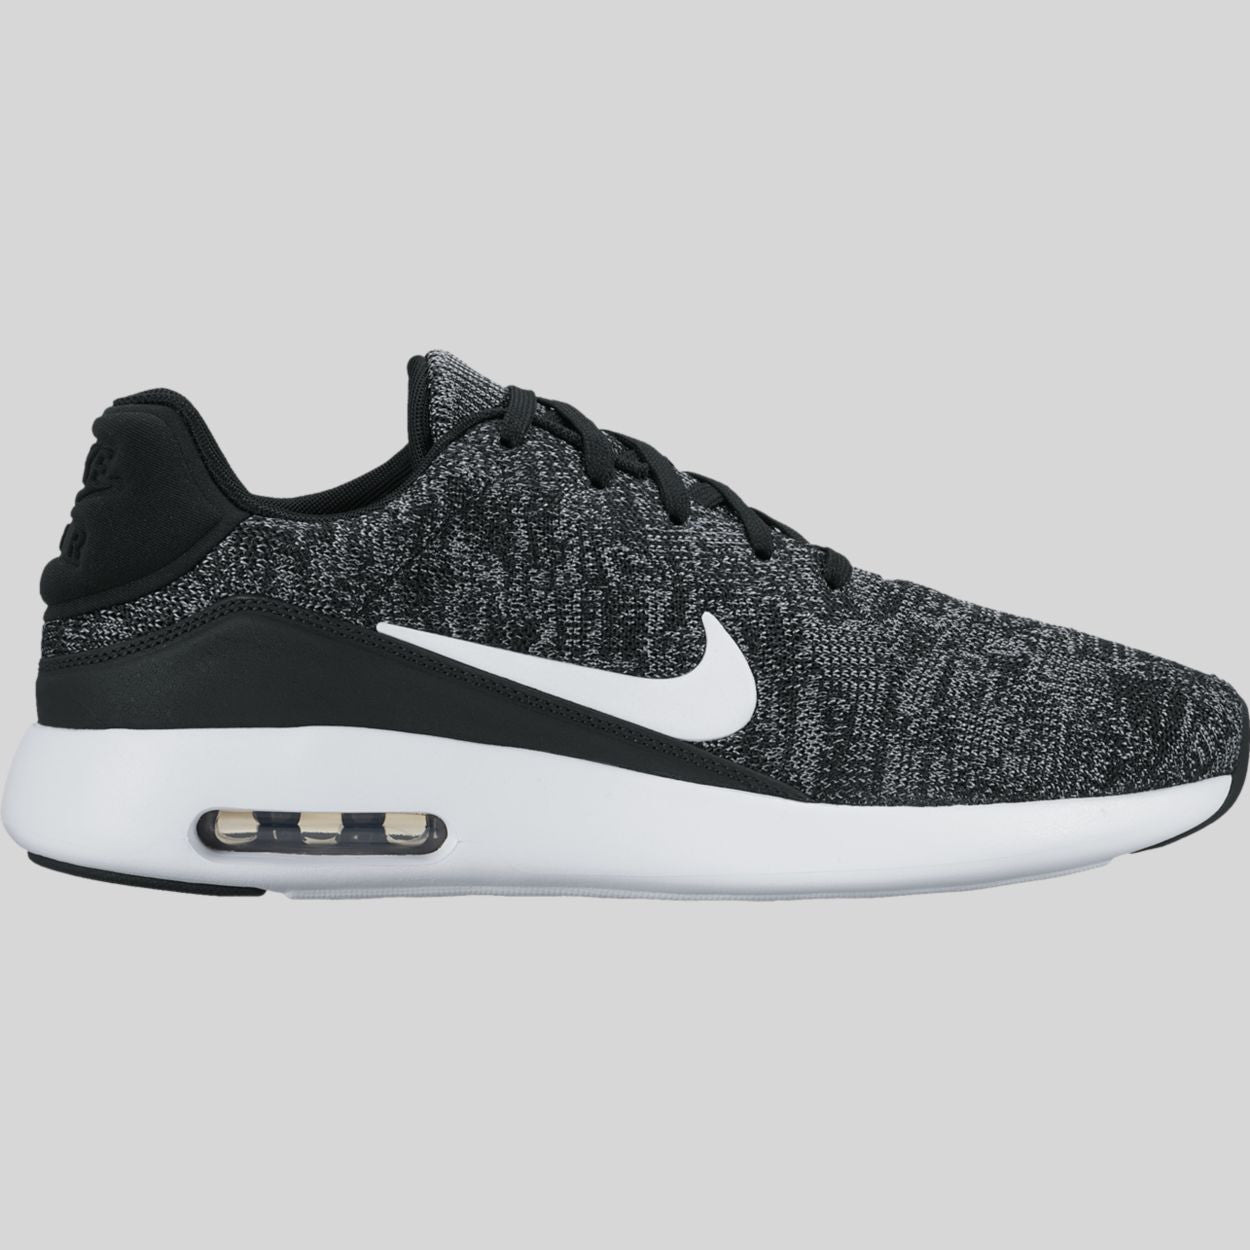 new style e1018 50831 Nike Air Max Modern Flyknit Black White Cool Grey University Red